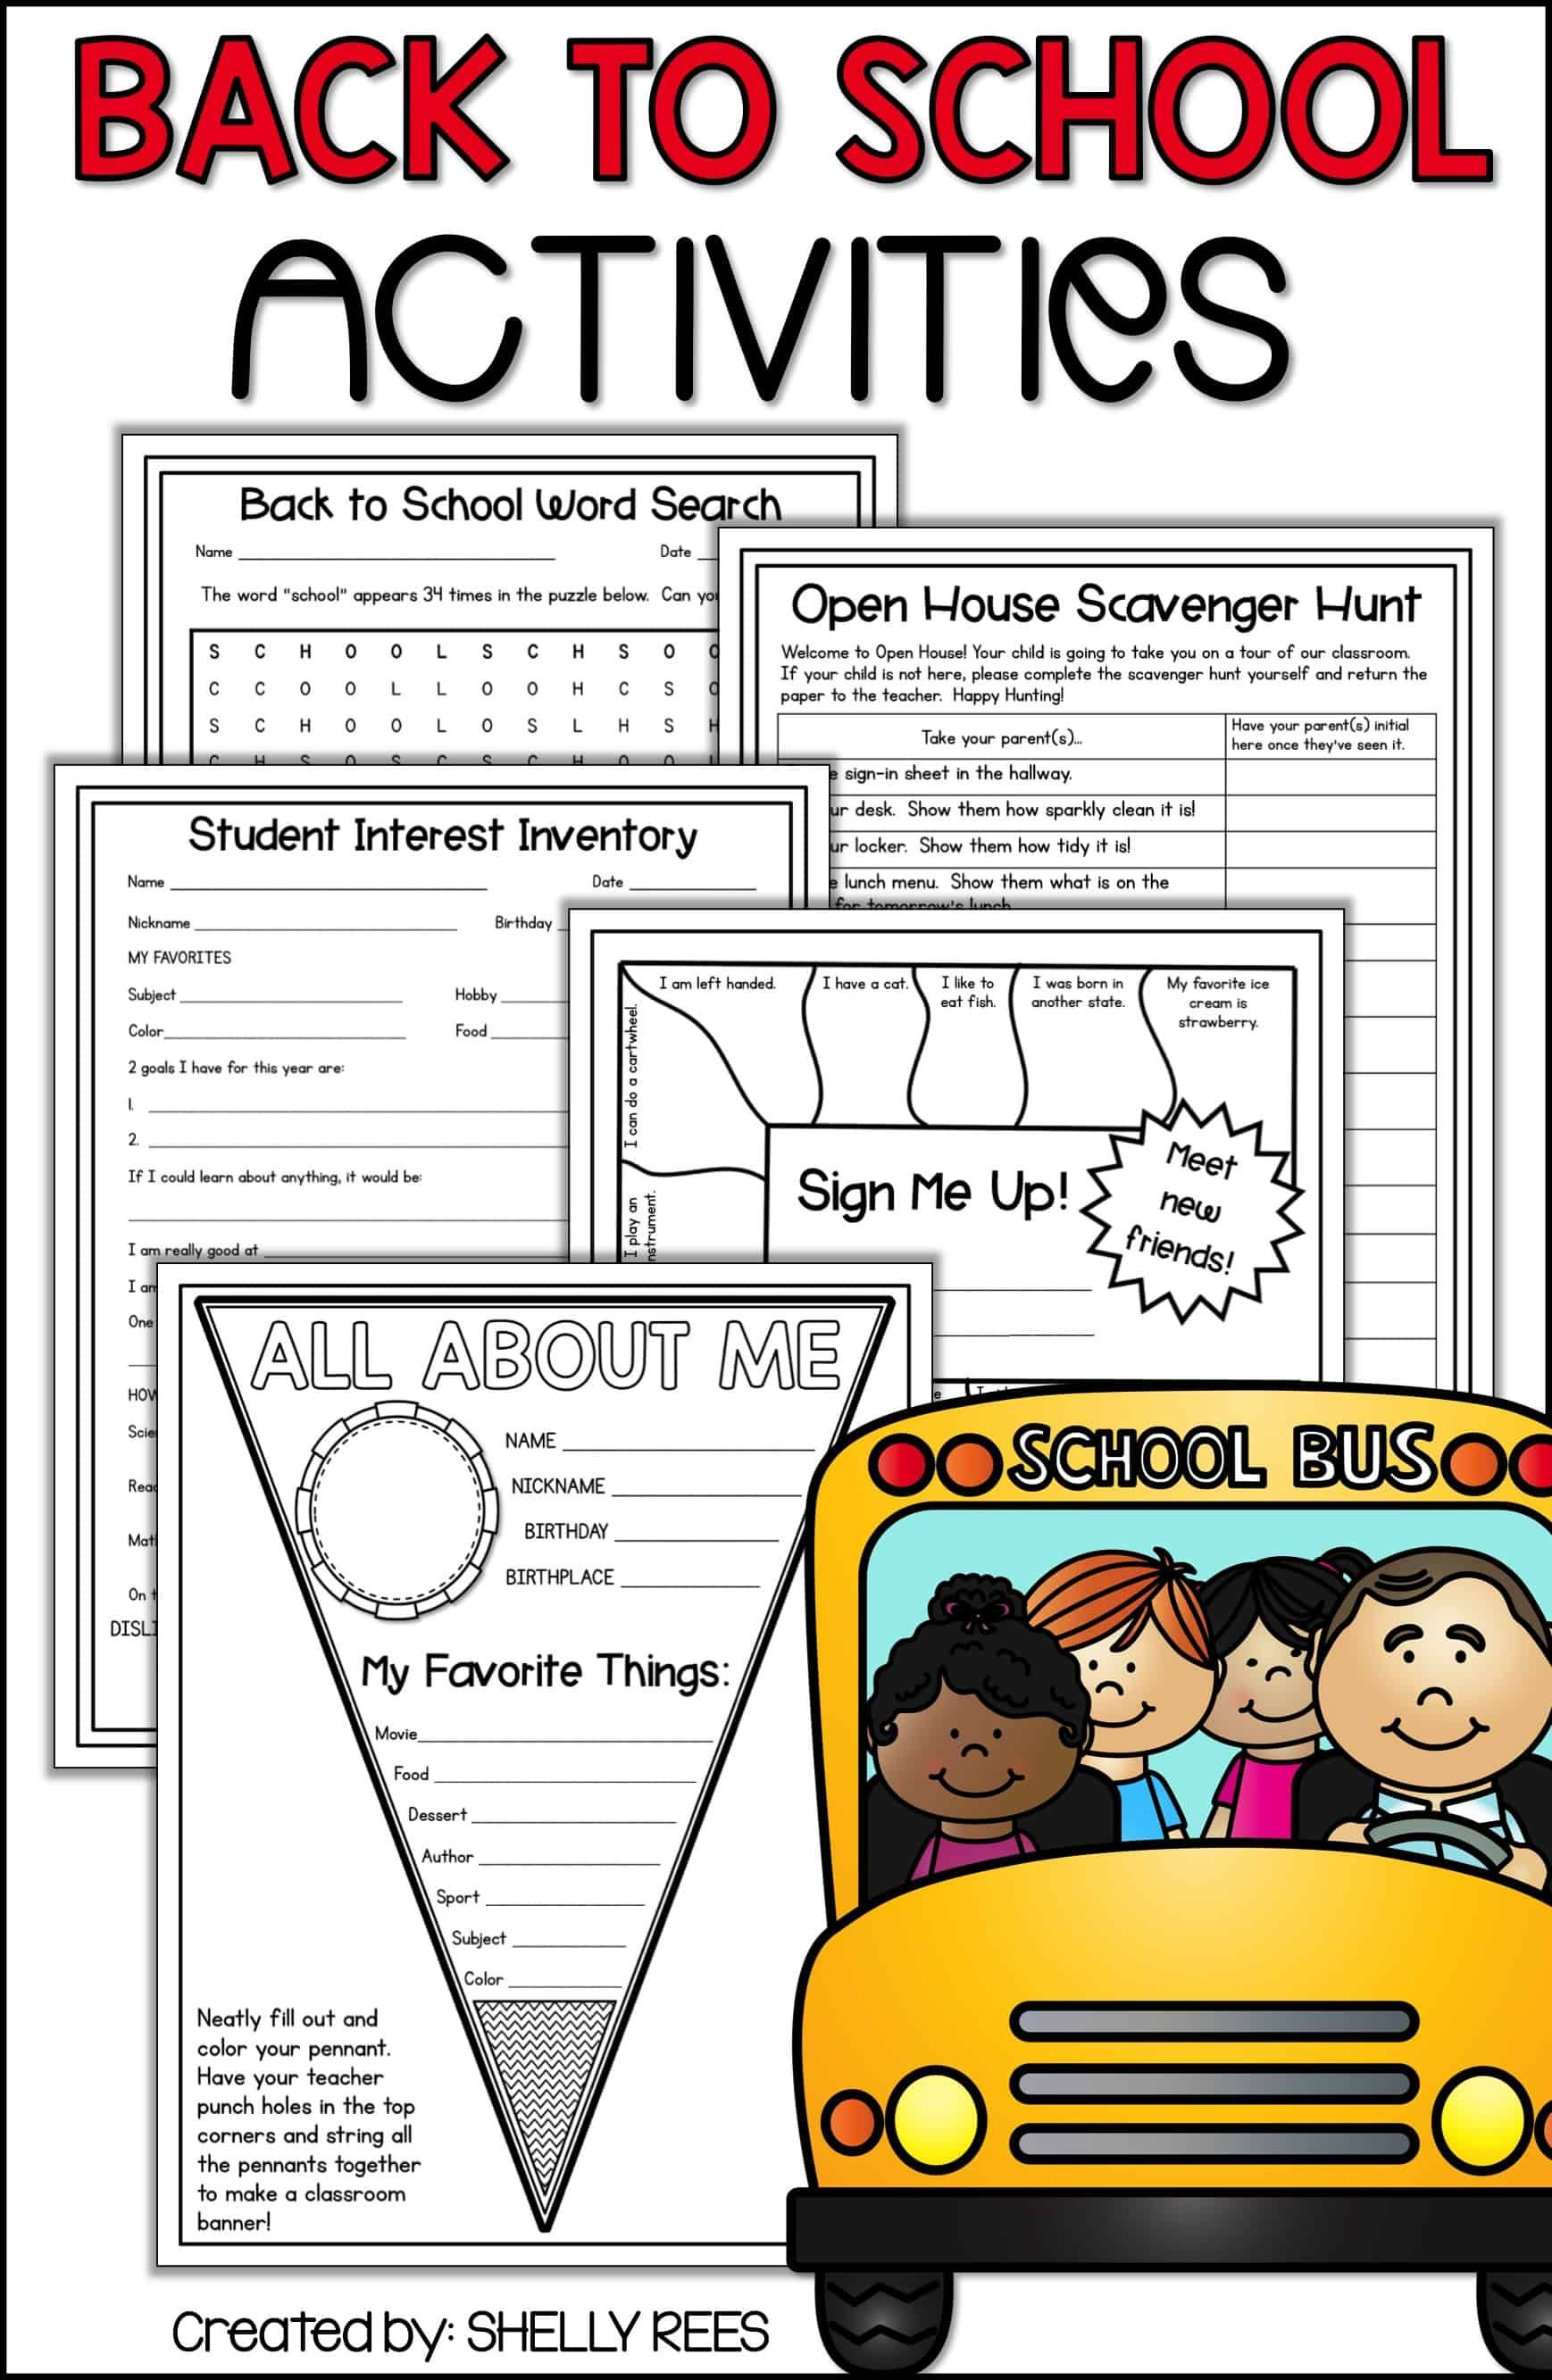 hight resolution of Back to School Activities for Elementary Teachers - Appletastic Learning    Back to school activities